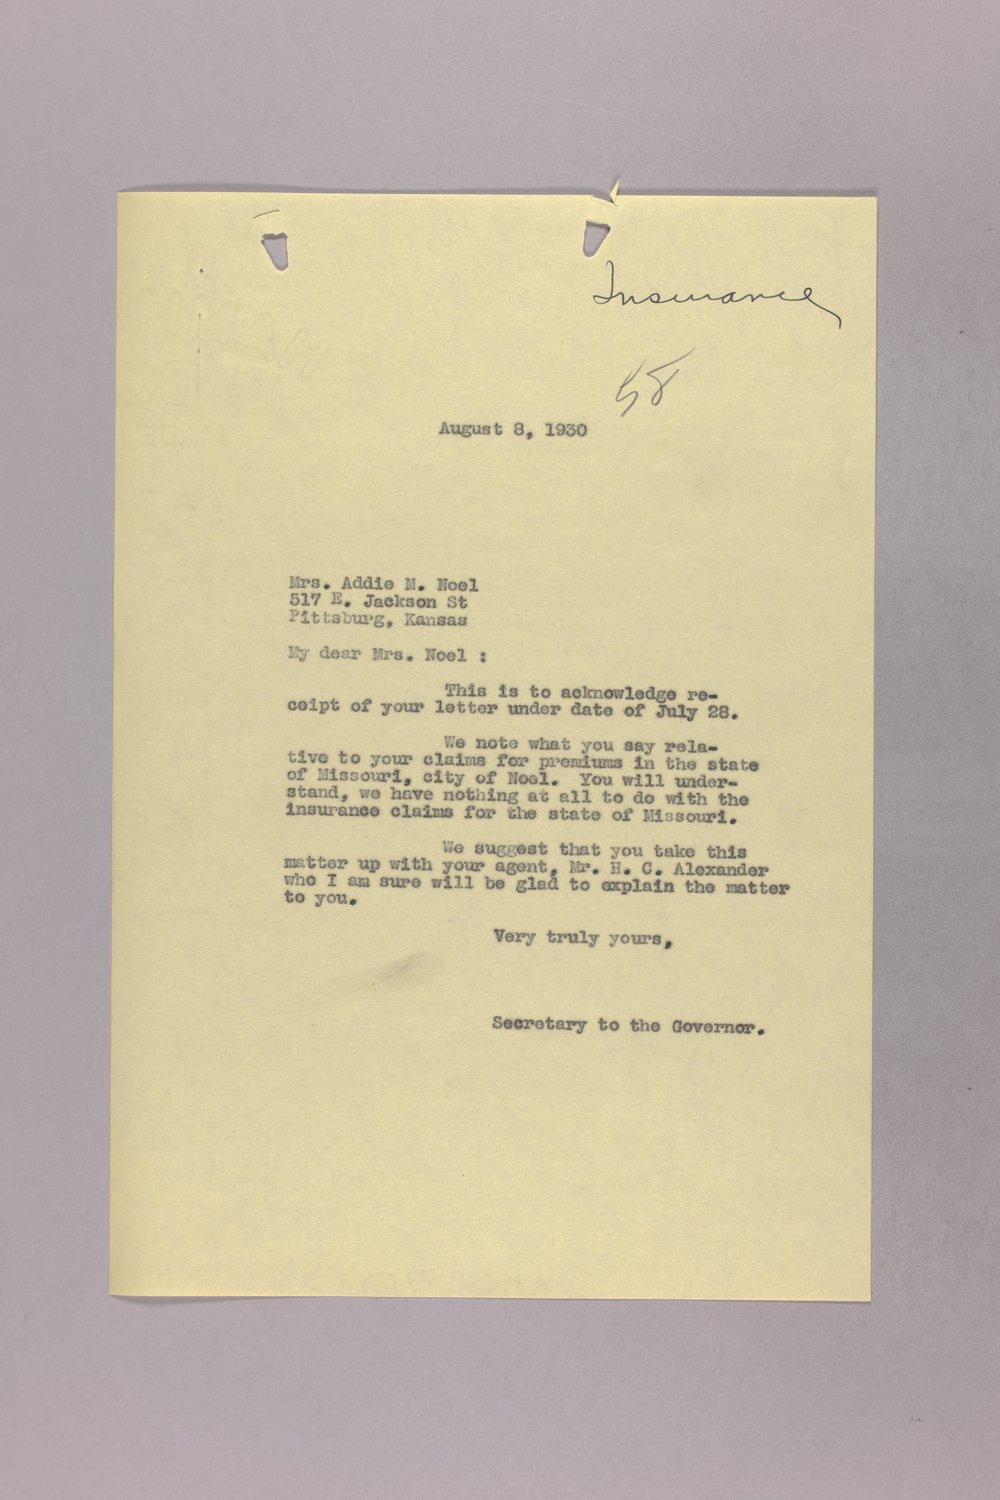 Governor Clyde M. Reed correspondence, hail insurance deduction - 1